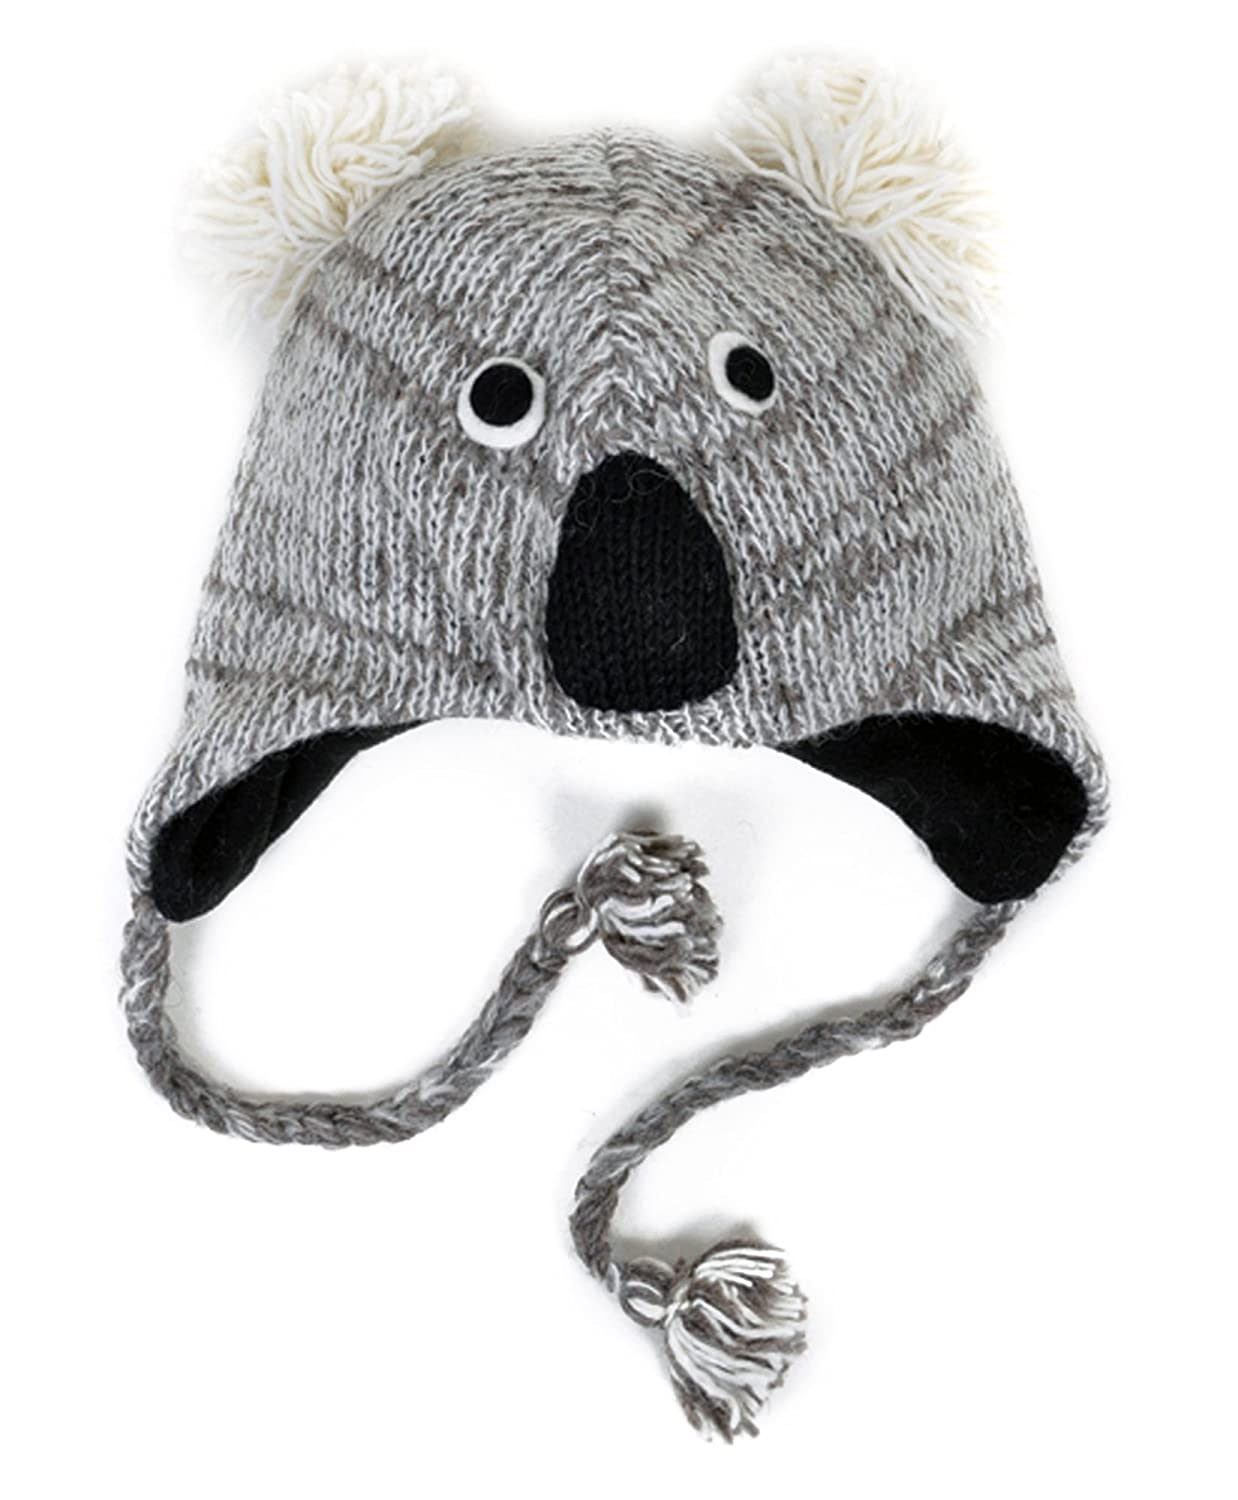 5d0c2f50a 100% Wool 'Hat-imals' Plush Knit Winter Hats (Wool Collection) (Koala  (AHW800))